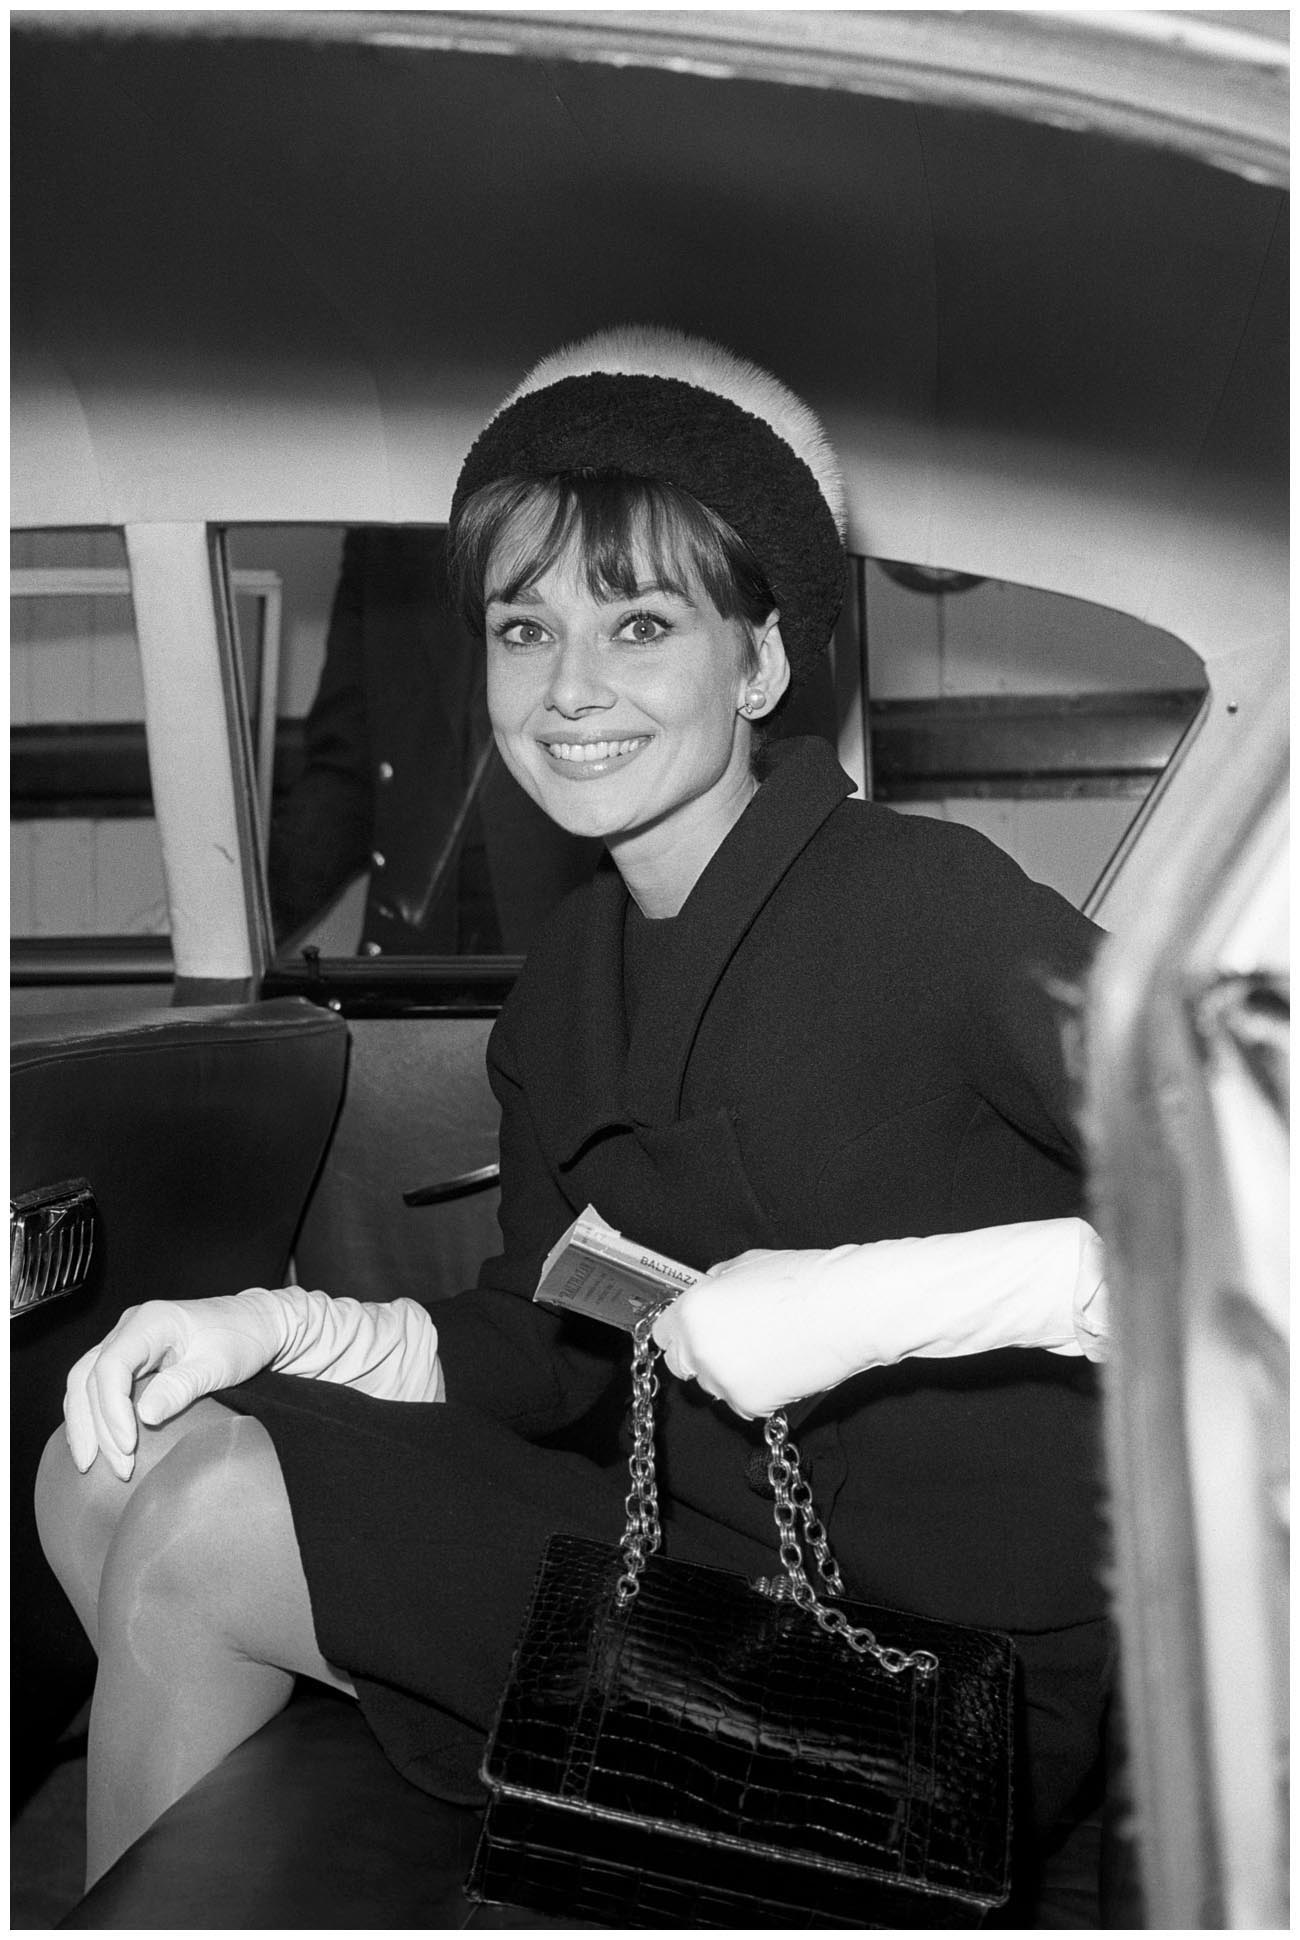 audrey hepburn heathrow from rome 1961 pleasurephoto room. Black Bedroom Furniture Sets. Home Design Ideas